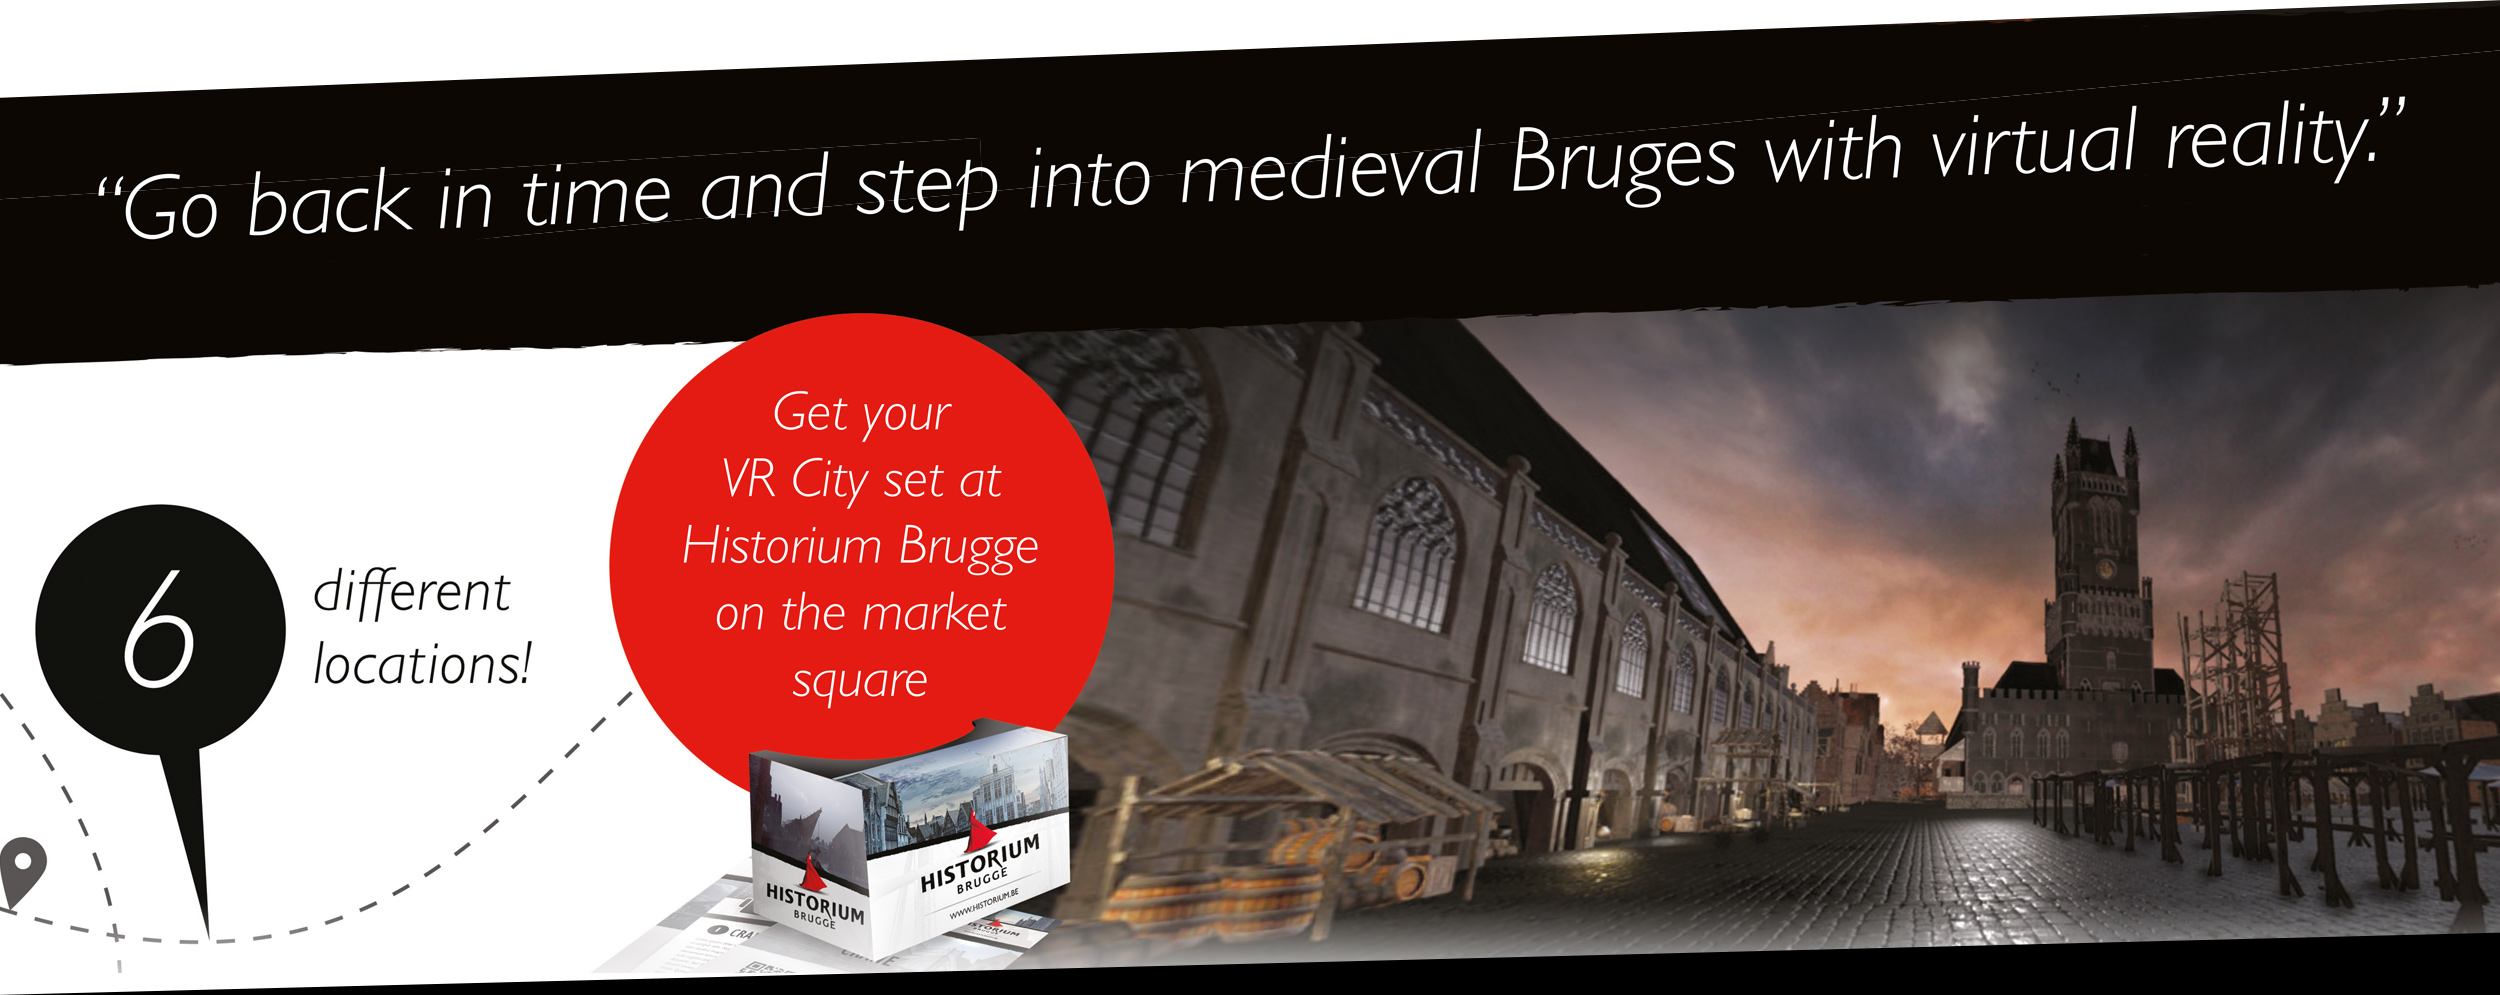 Go back in time and step into medieval Bruges with virtual reality